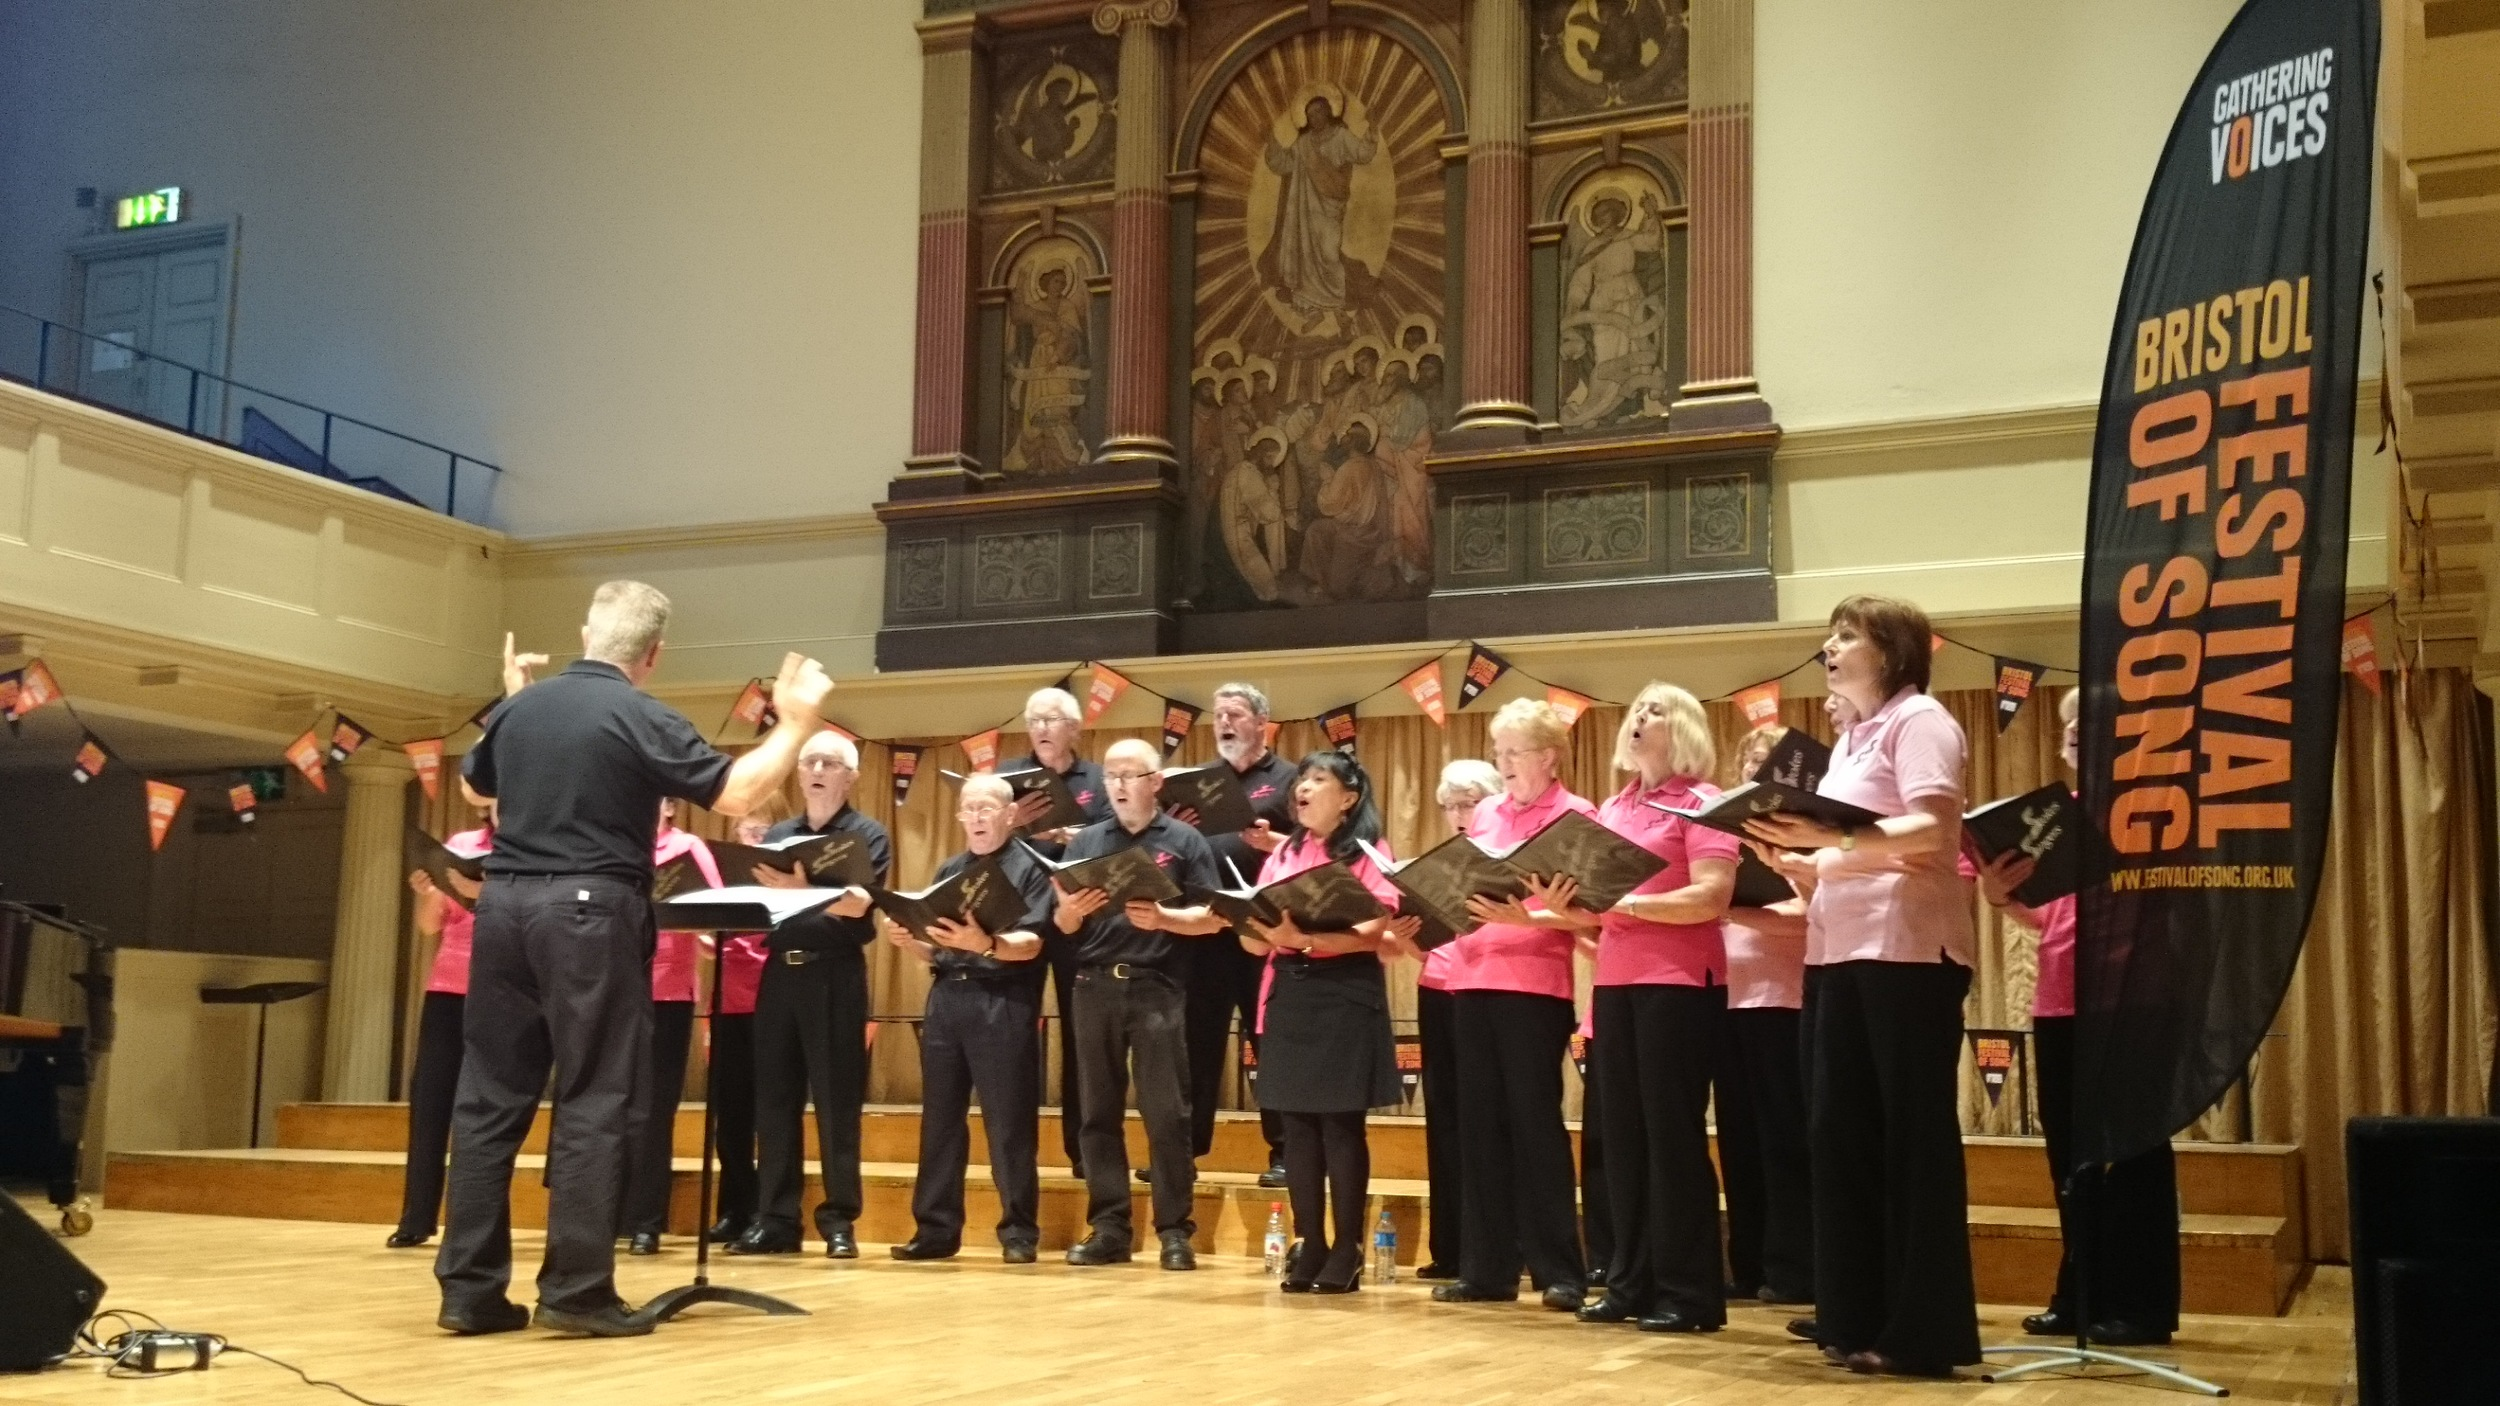 Singing at St Georges